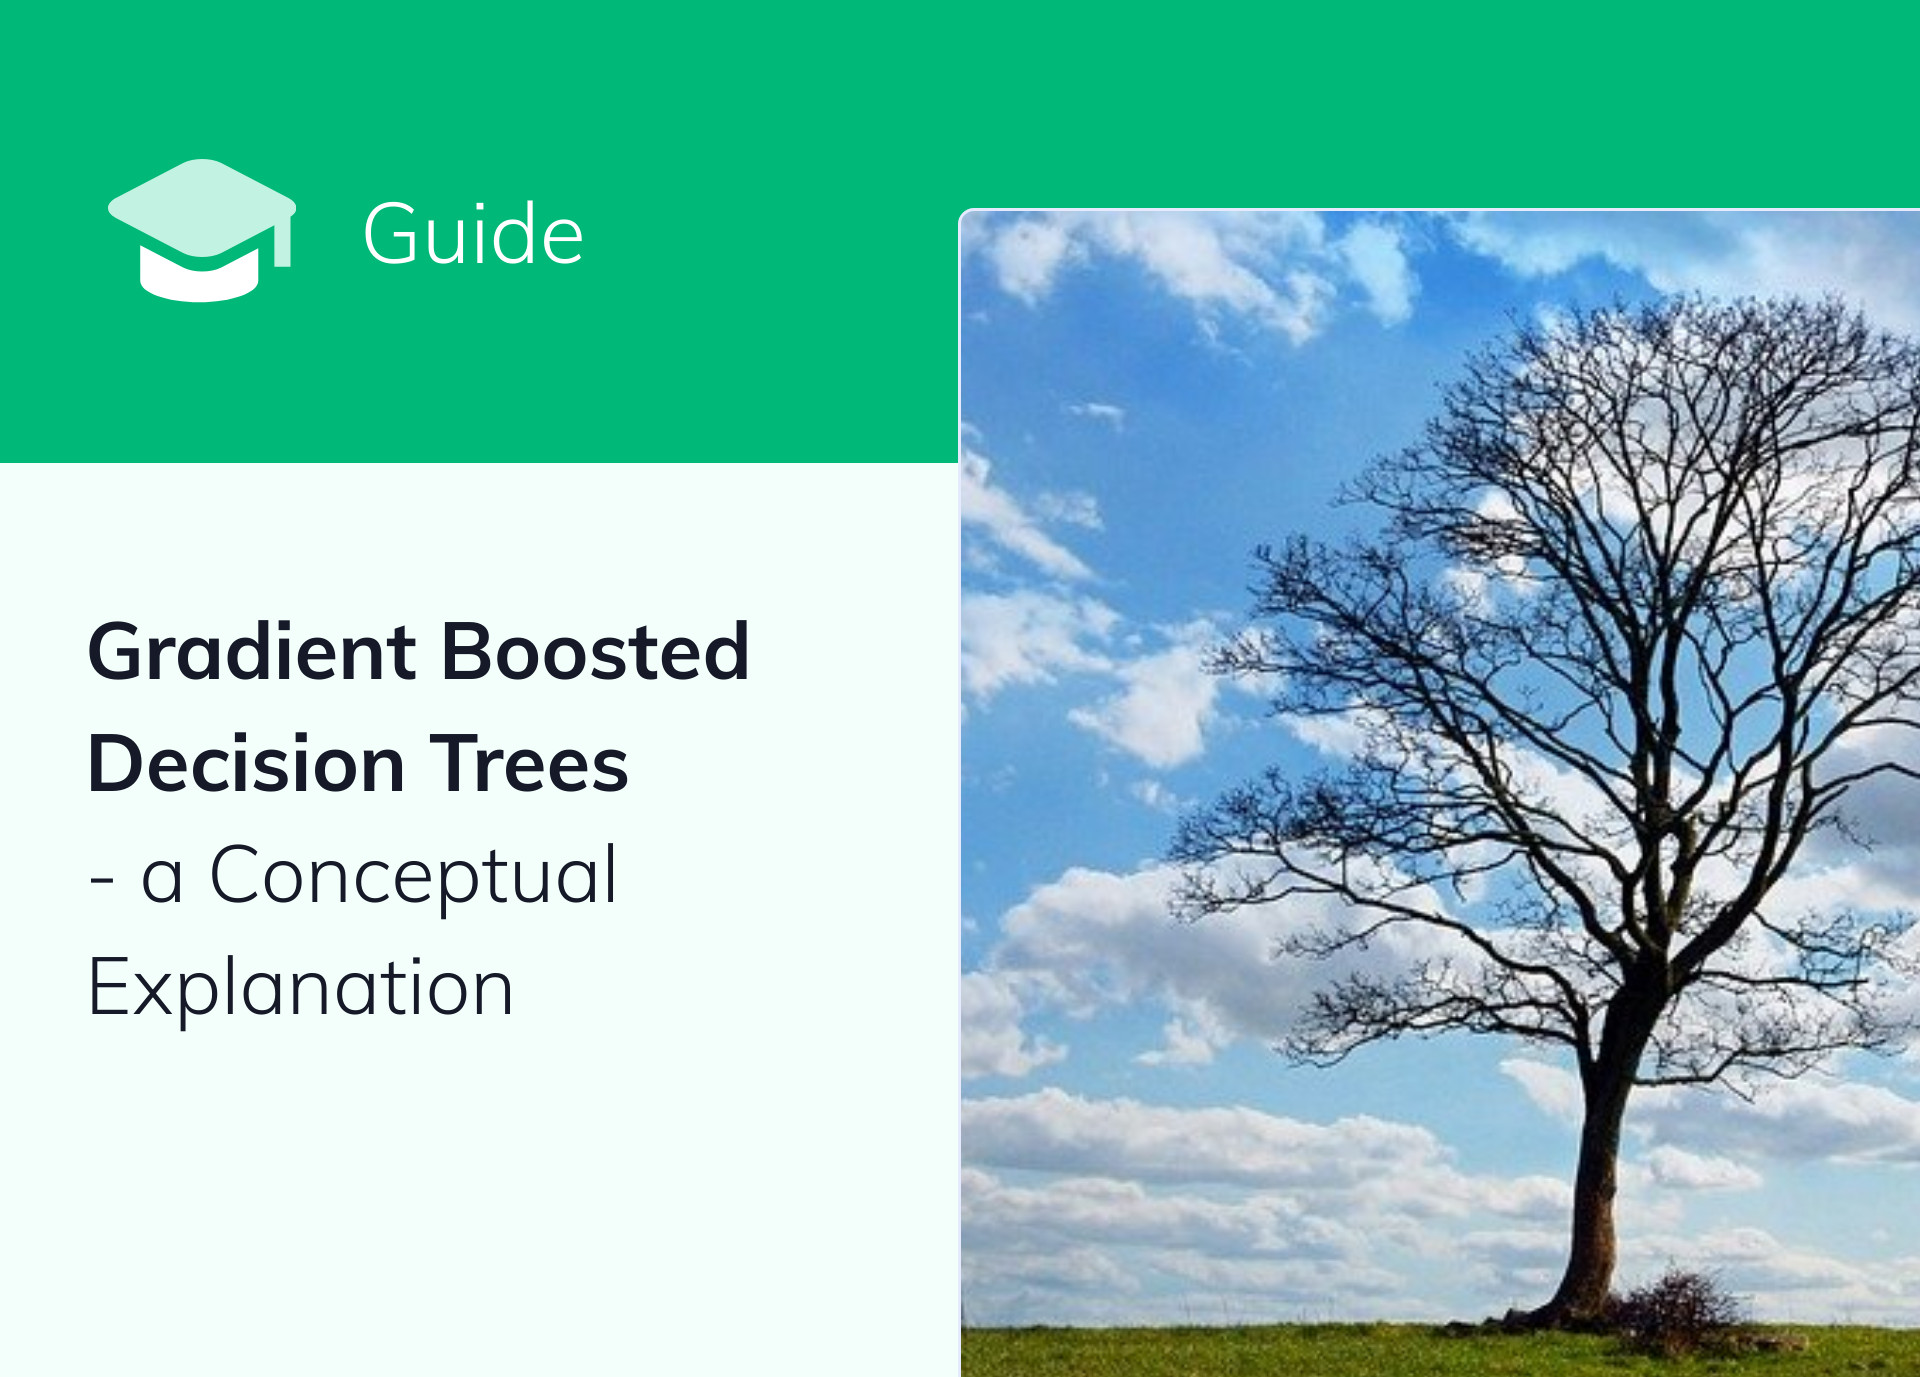 Gradient Boosted Decision Trees [Guide] – a Conceptual Explanation